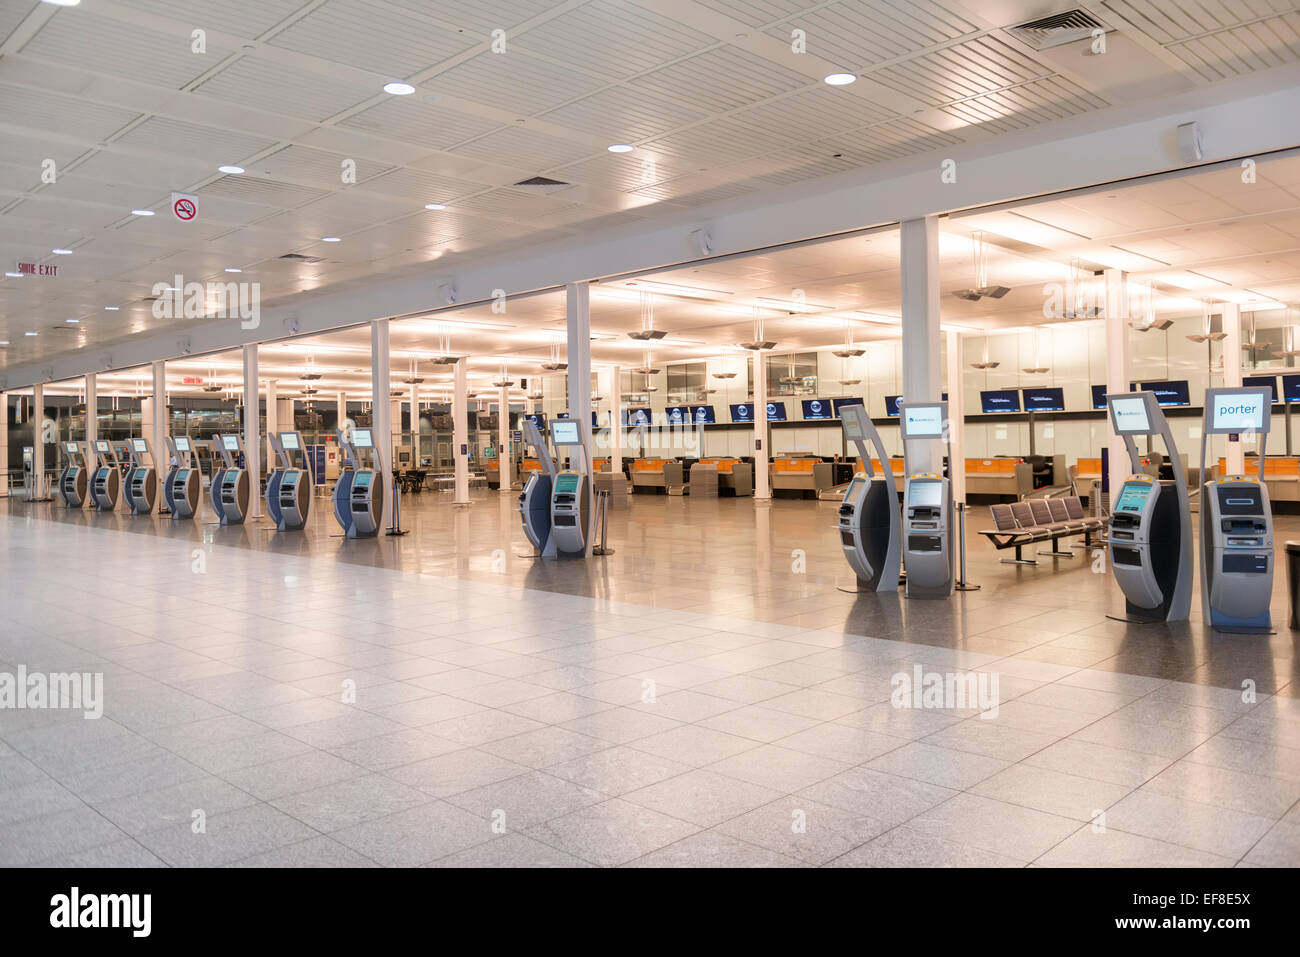 Electronic check-in kiosks at an airport in Montreal, Quebec, Canada - Stock Image